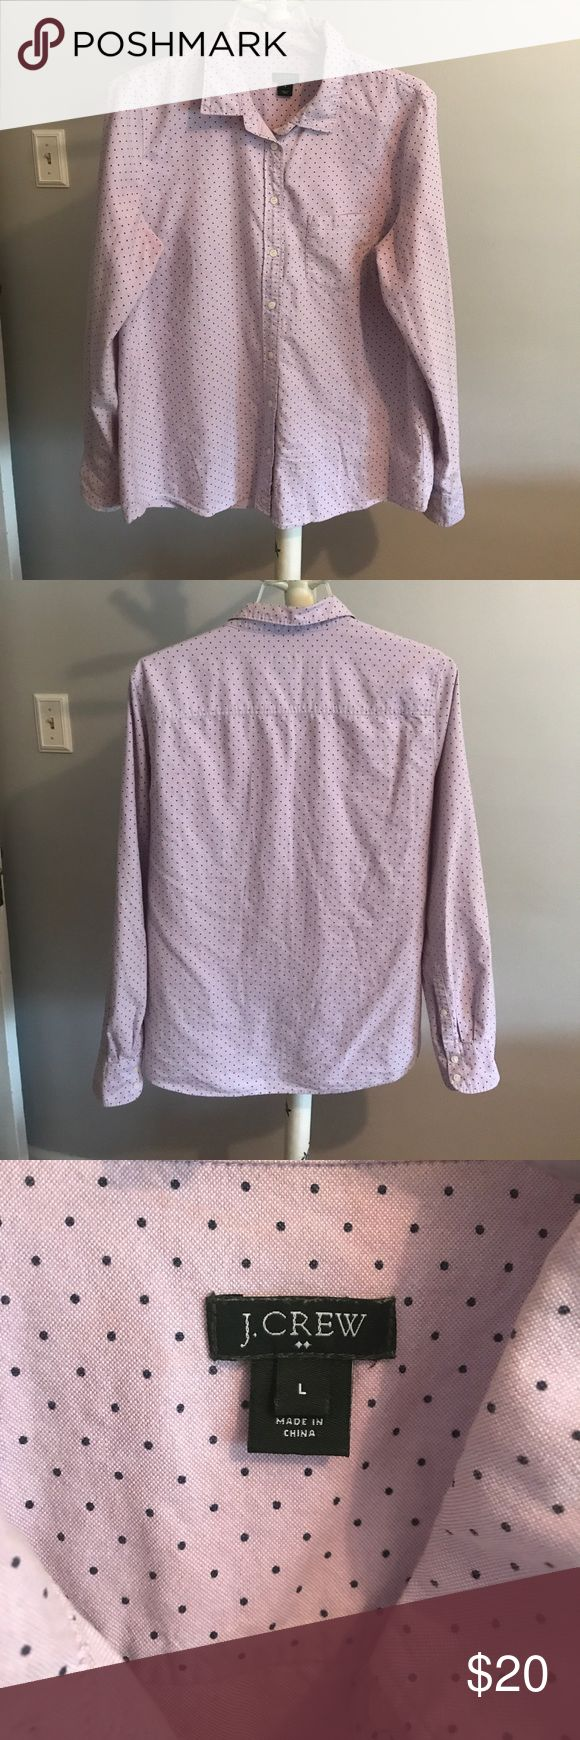 J Crew oxford shirt J.Crew Factory Polka Dot Patterned Oxford Button Down Shirt Lilac Purple with Navy Blue Polka Dots Long sleeve Collared Single chest pocket Pre-owned in great condition with no flaws Women's Size L. J. Crew Tops Button Down Shirts